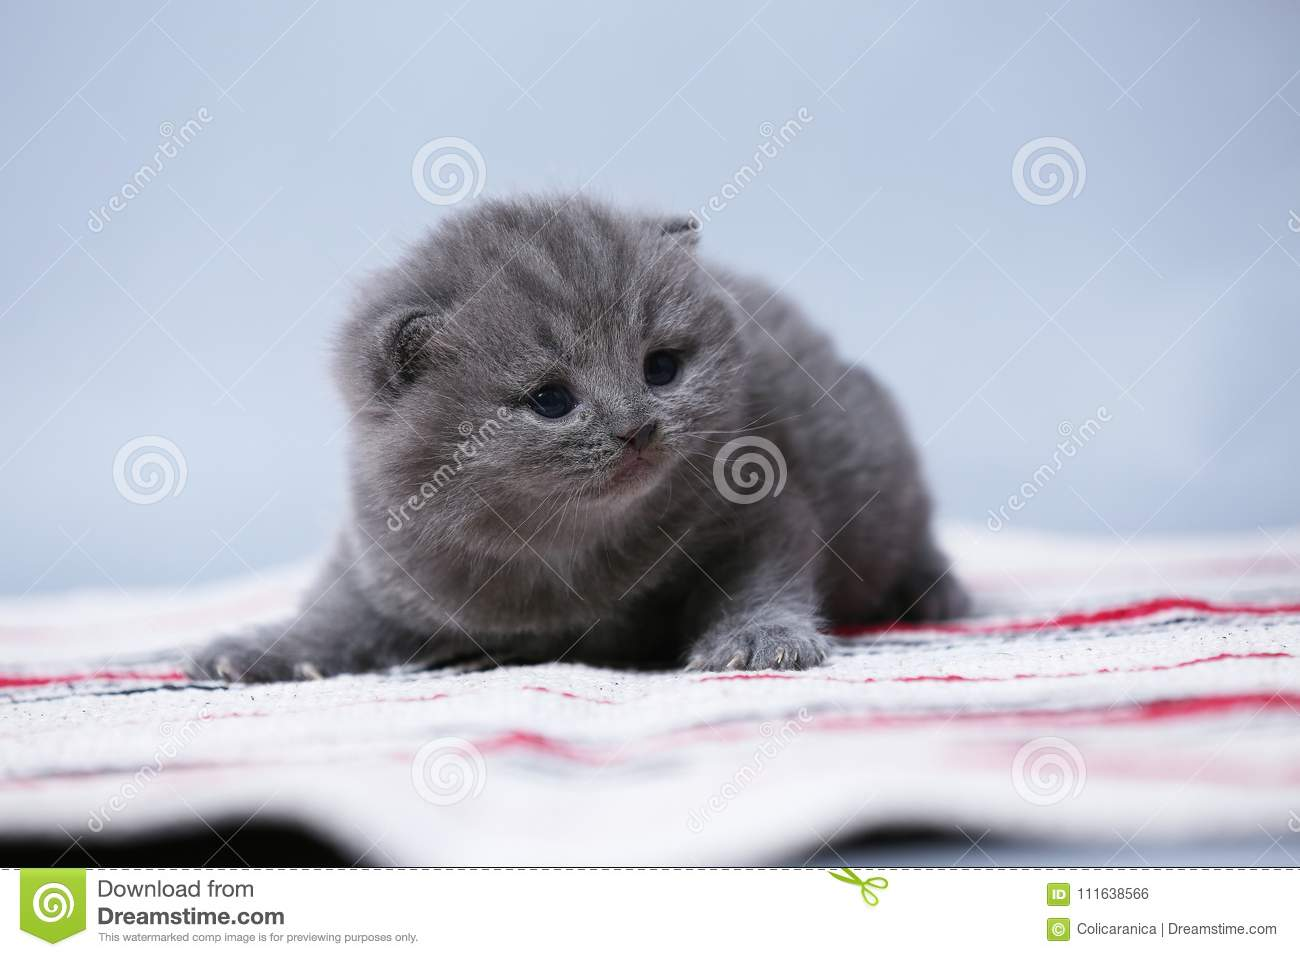 Kittens sitting on small carpet, cute face